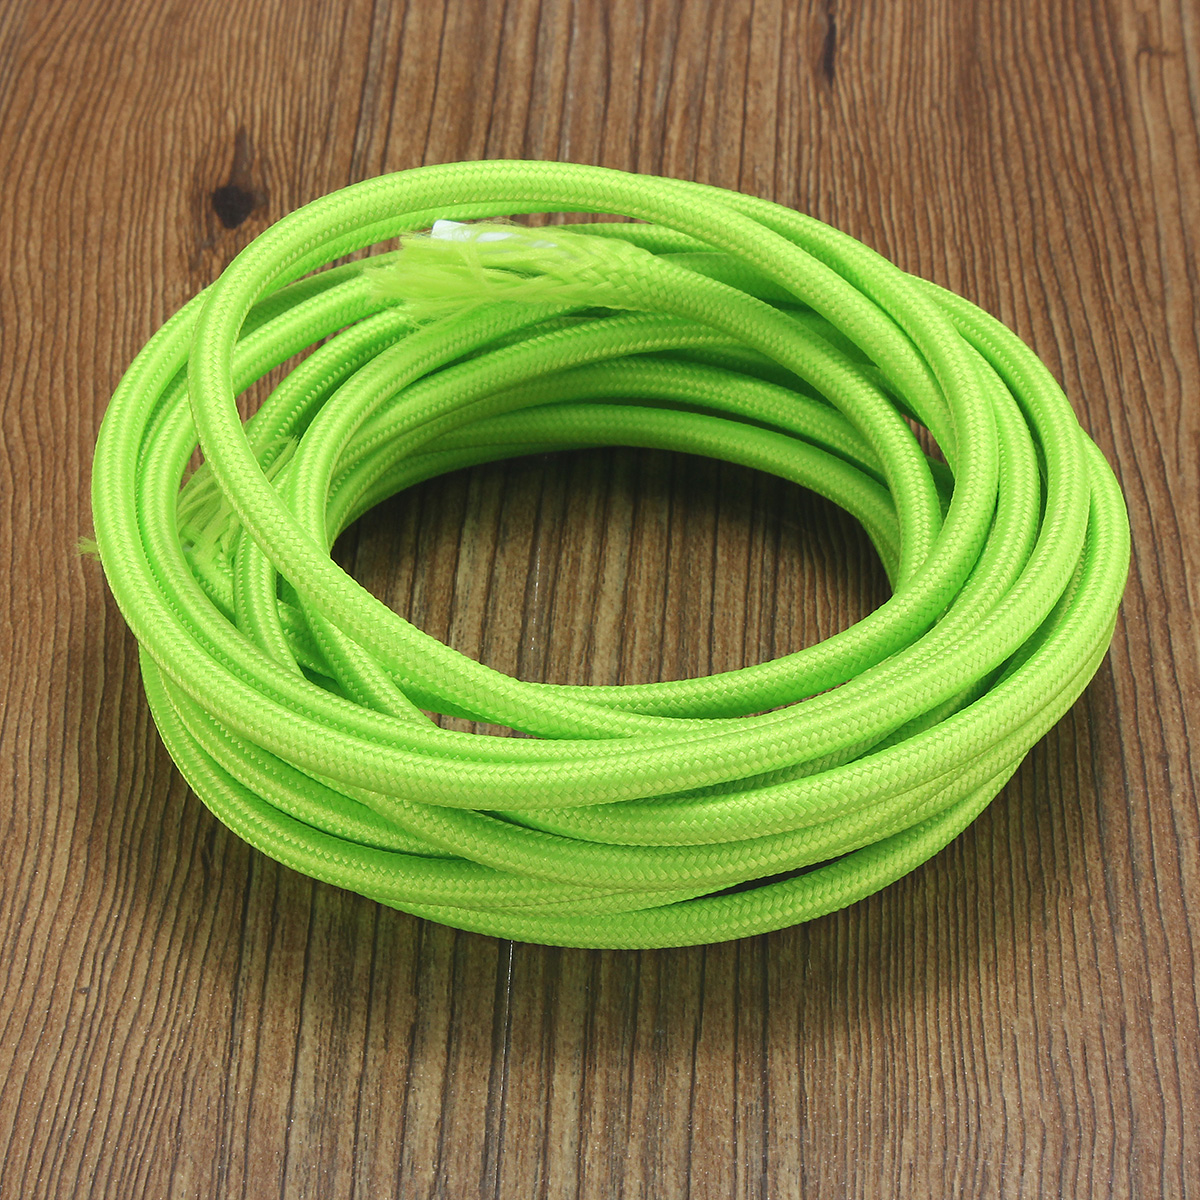 5M 2 Cord Color Vintage Twist Braided Fabric Light Cable Electric Wire